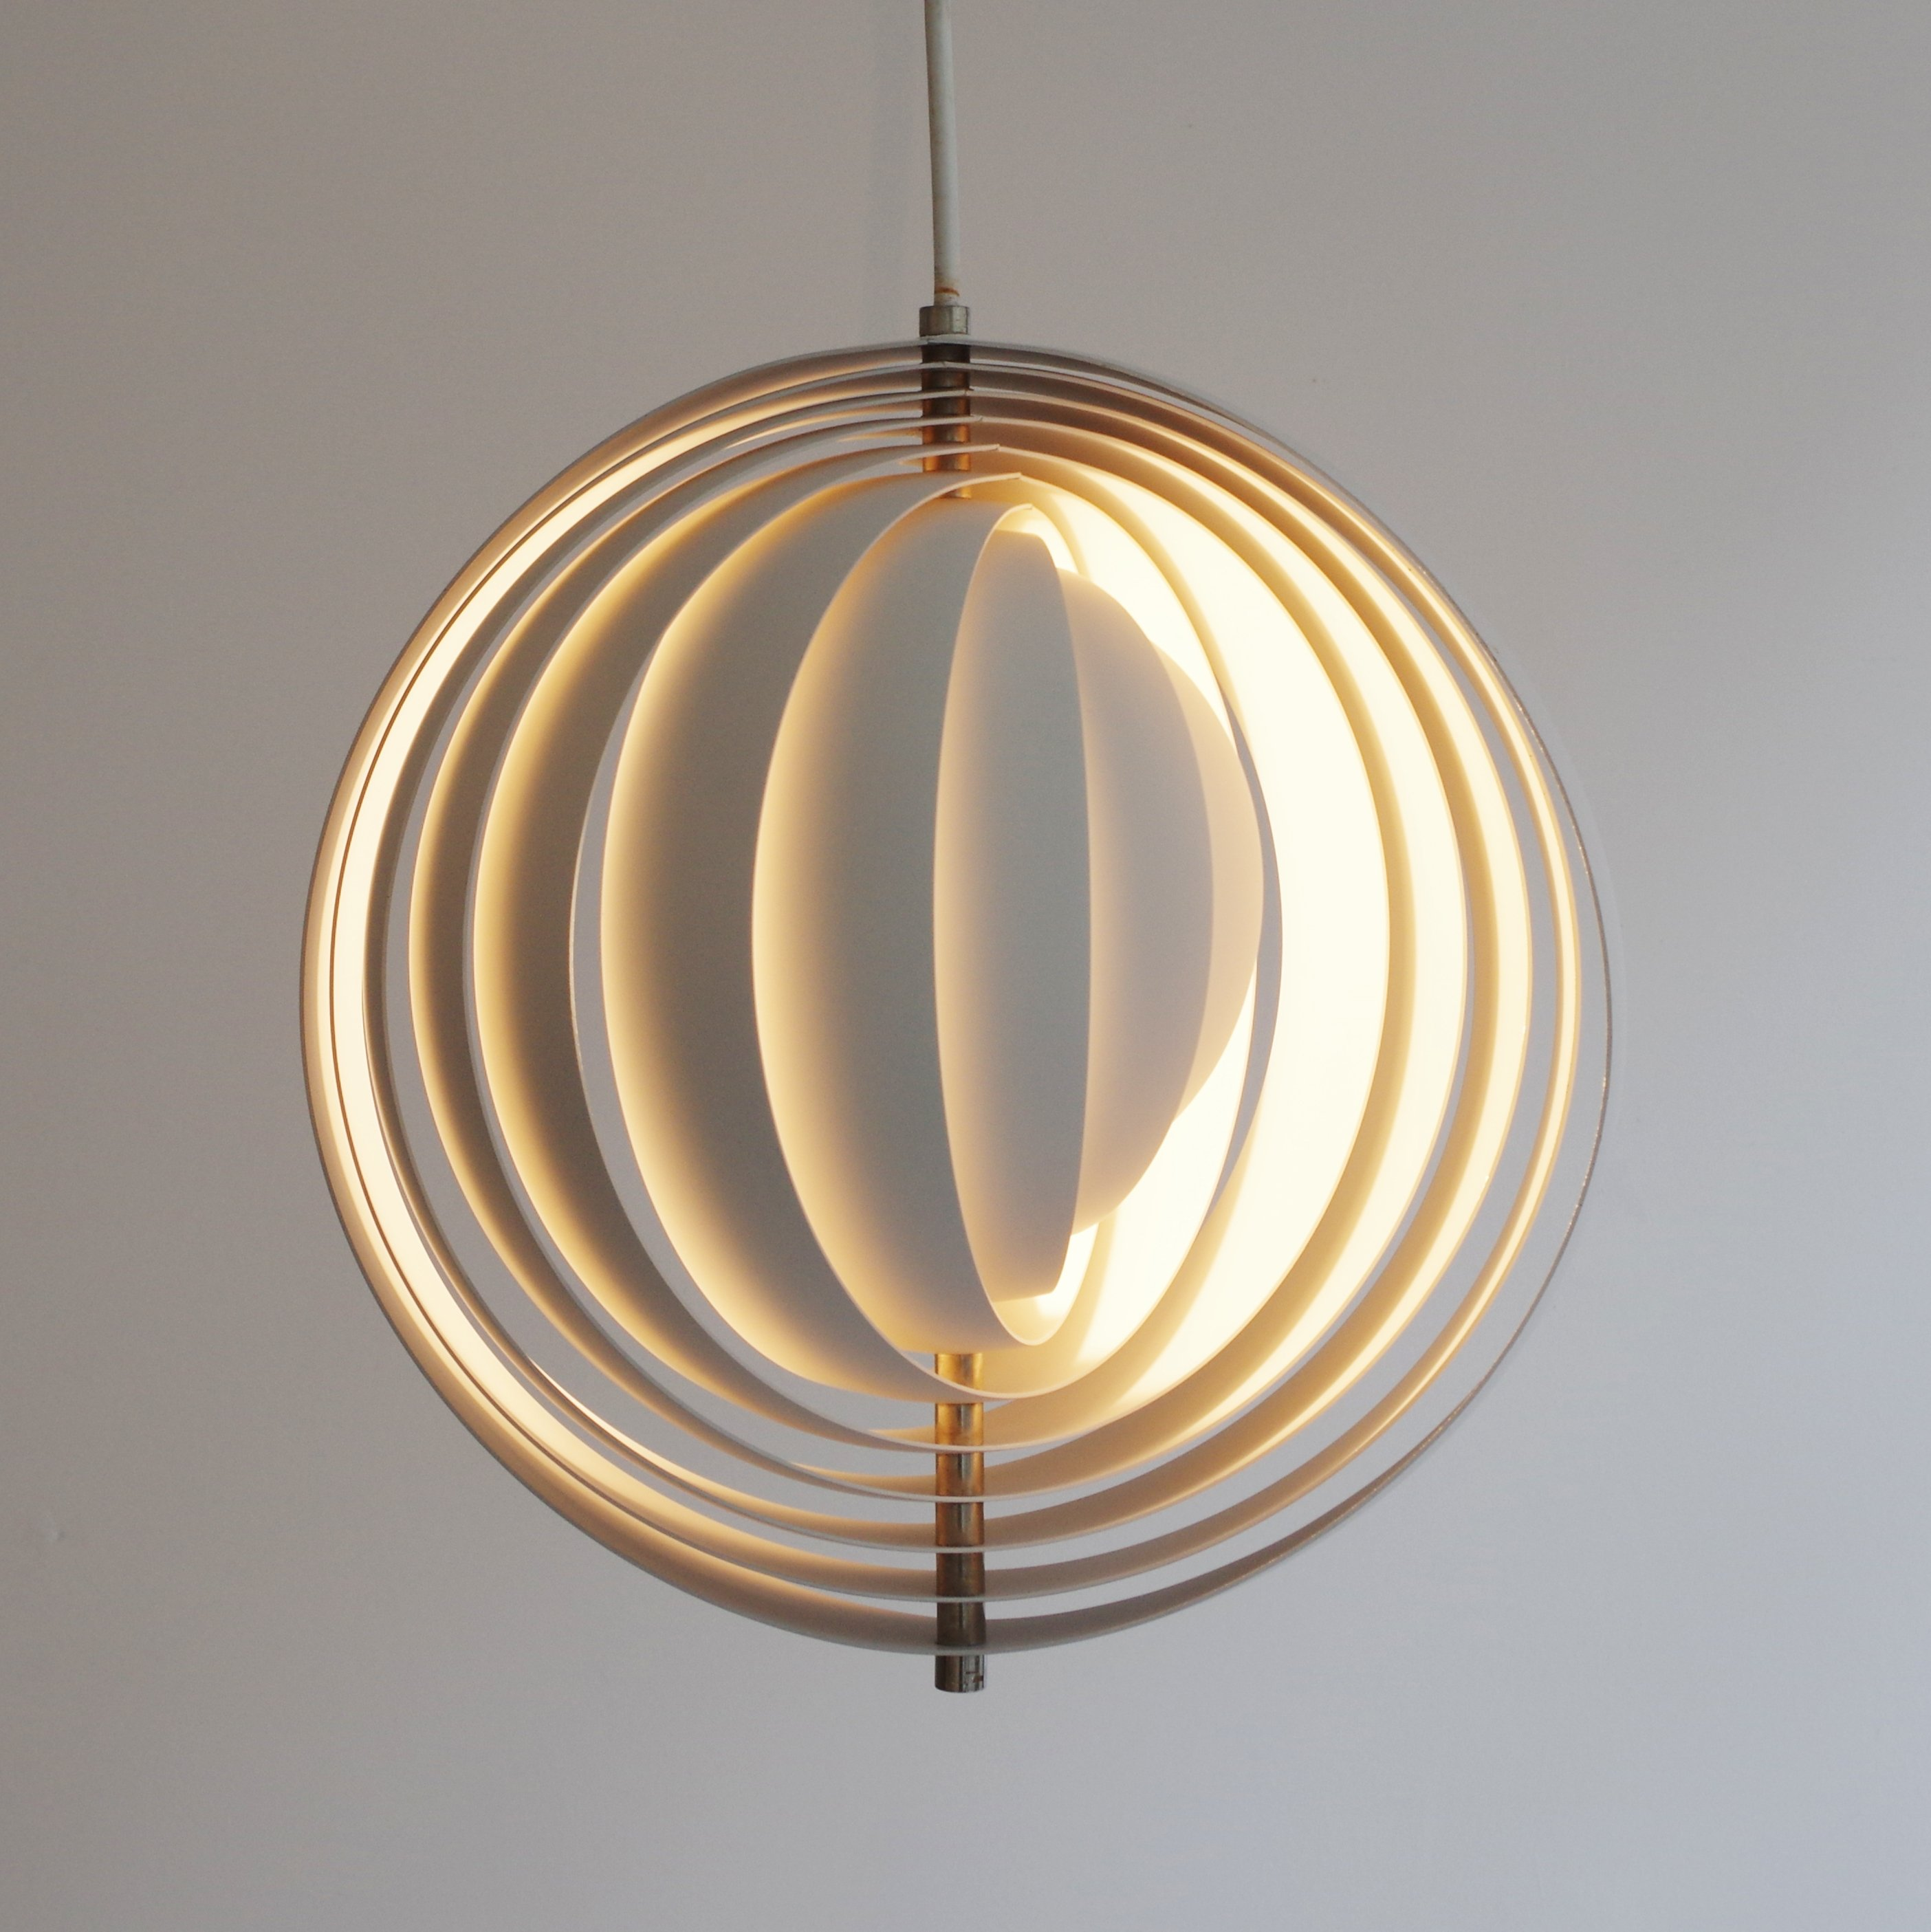 Moon Hanging Lamp By Verner Panton For Louis Poulsen, 1960s